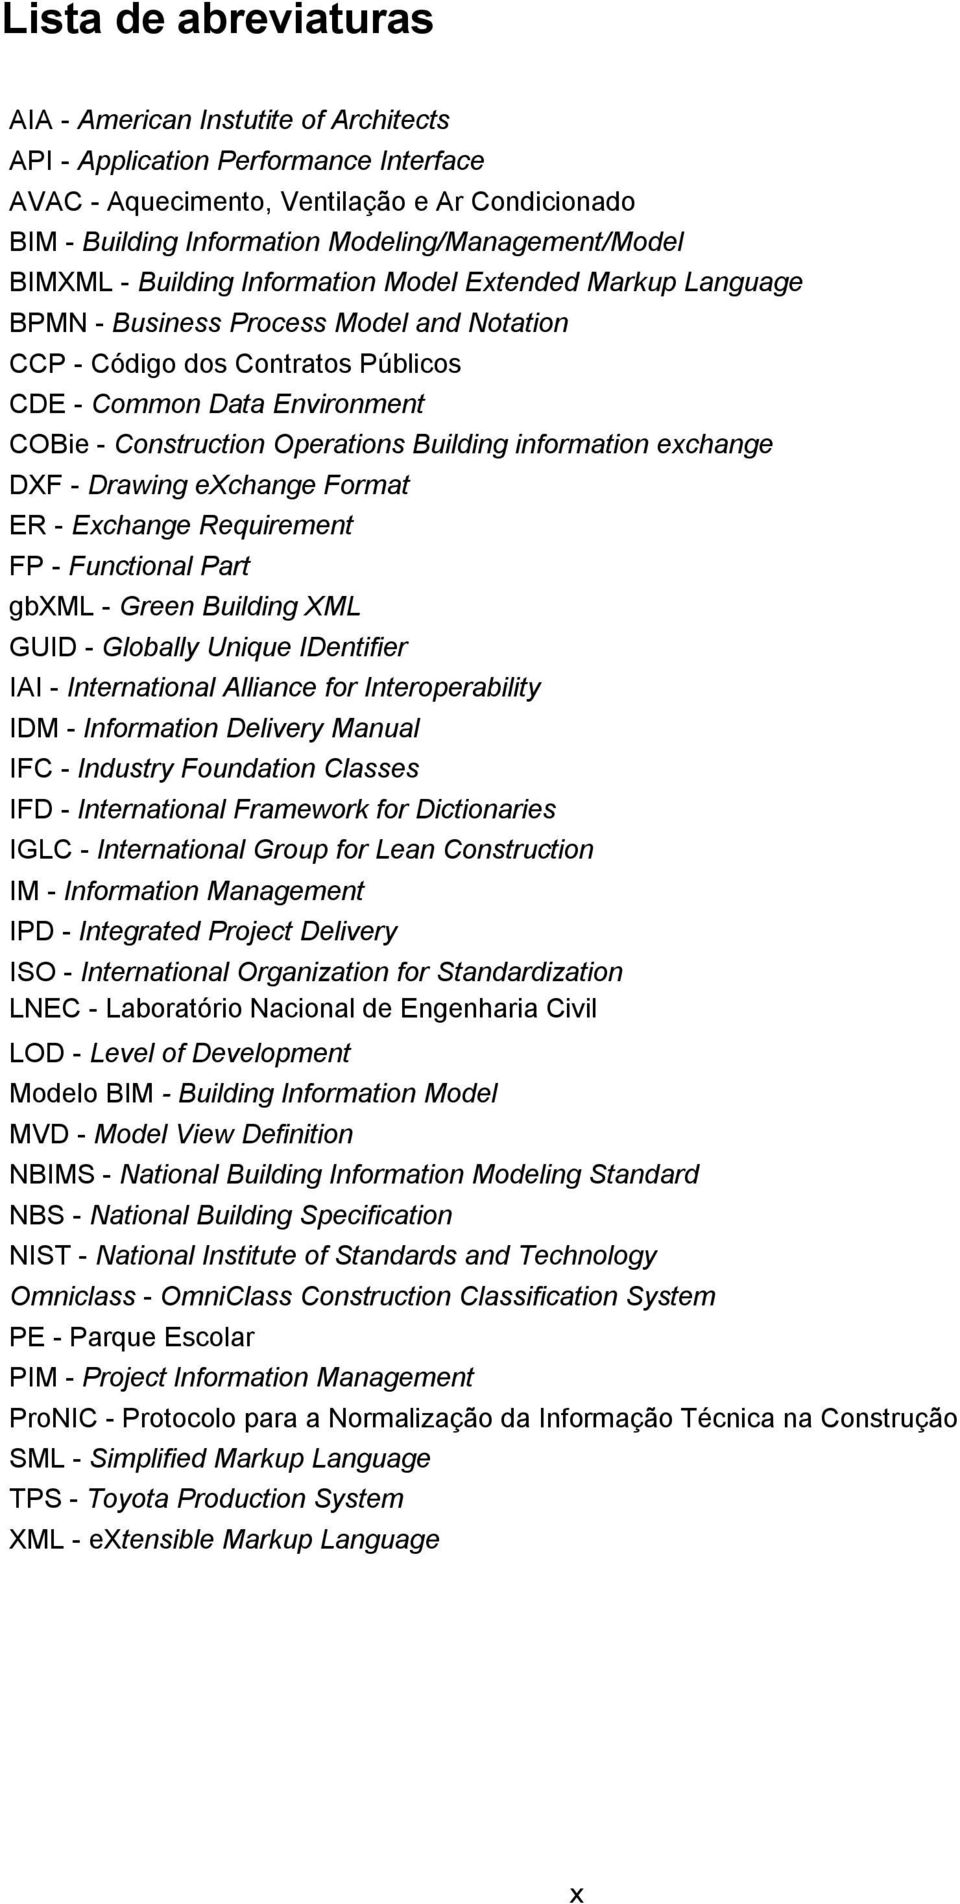 COBie - Construction Operations Building information exchange DXF - Drawing exchange Format ER - Exchange Requirement FP - Functional Part gbxml - Green Building XML GUID - Globally Unique IDentifier